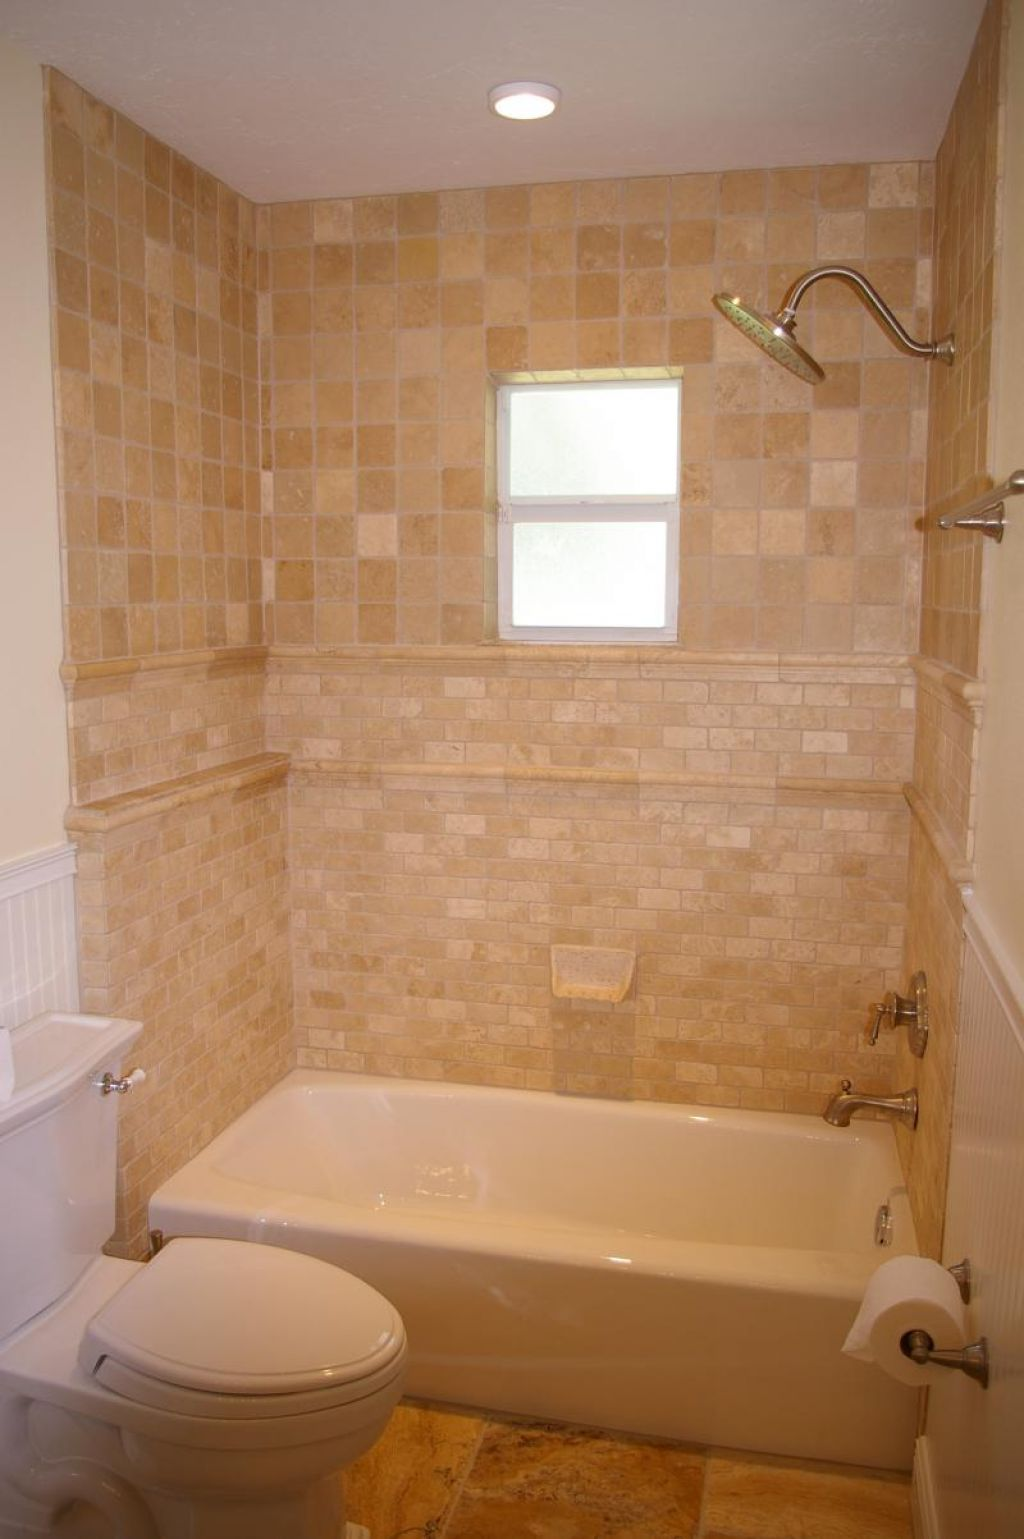 30 shower tile ideas on a budget for Small bathroom designs with shower and tub